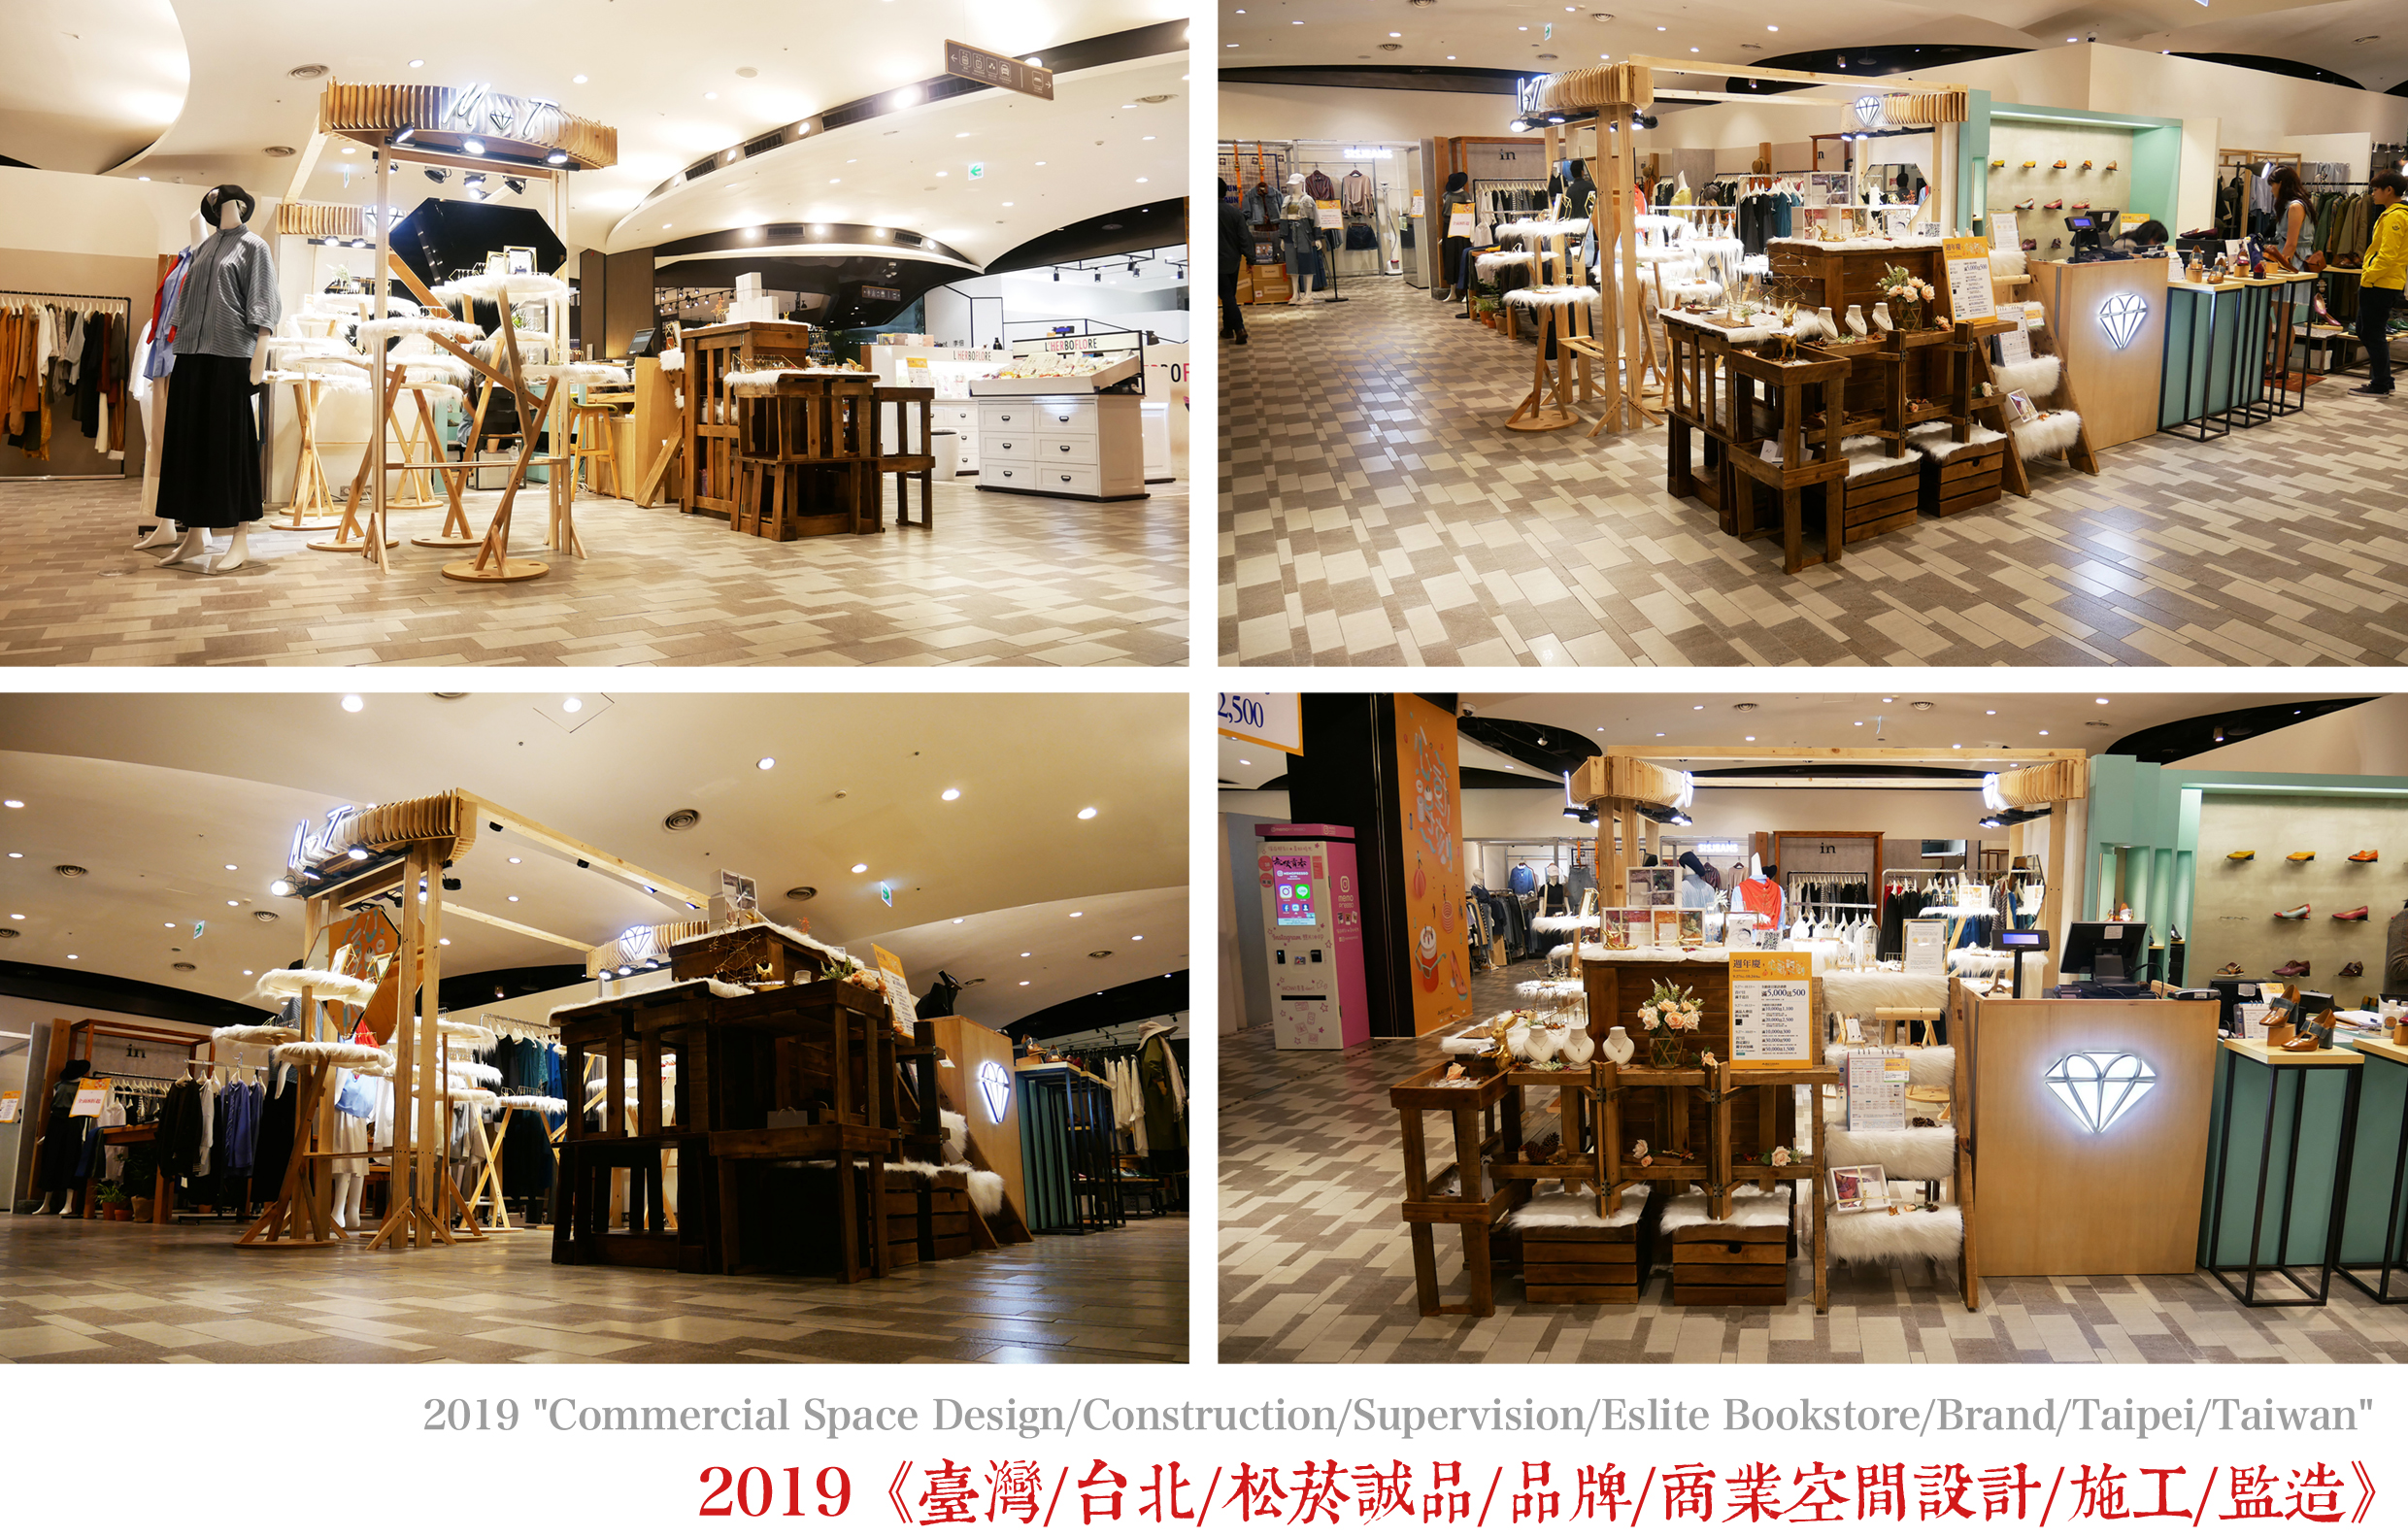 "2019 ""Commercial Space Design/Construction/Supervision/Eslite Bookstore/Brand/Taipei/Taiwan""2019《臺灣/台北/松菸誠品/品牌/商業空間設計/施工/監造》【Just Jump Culture all rights reserved子丑文創/版權所有】"